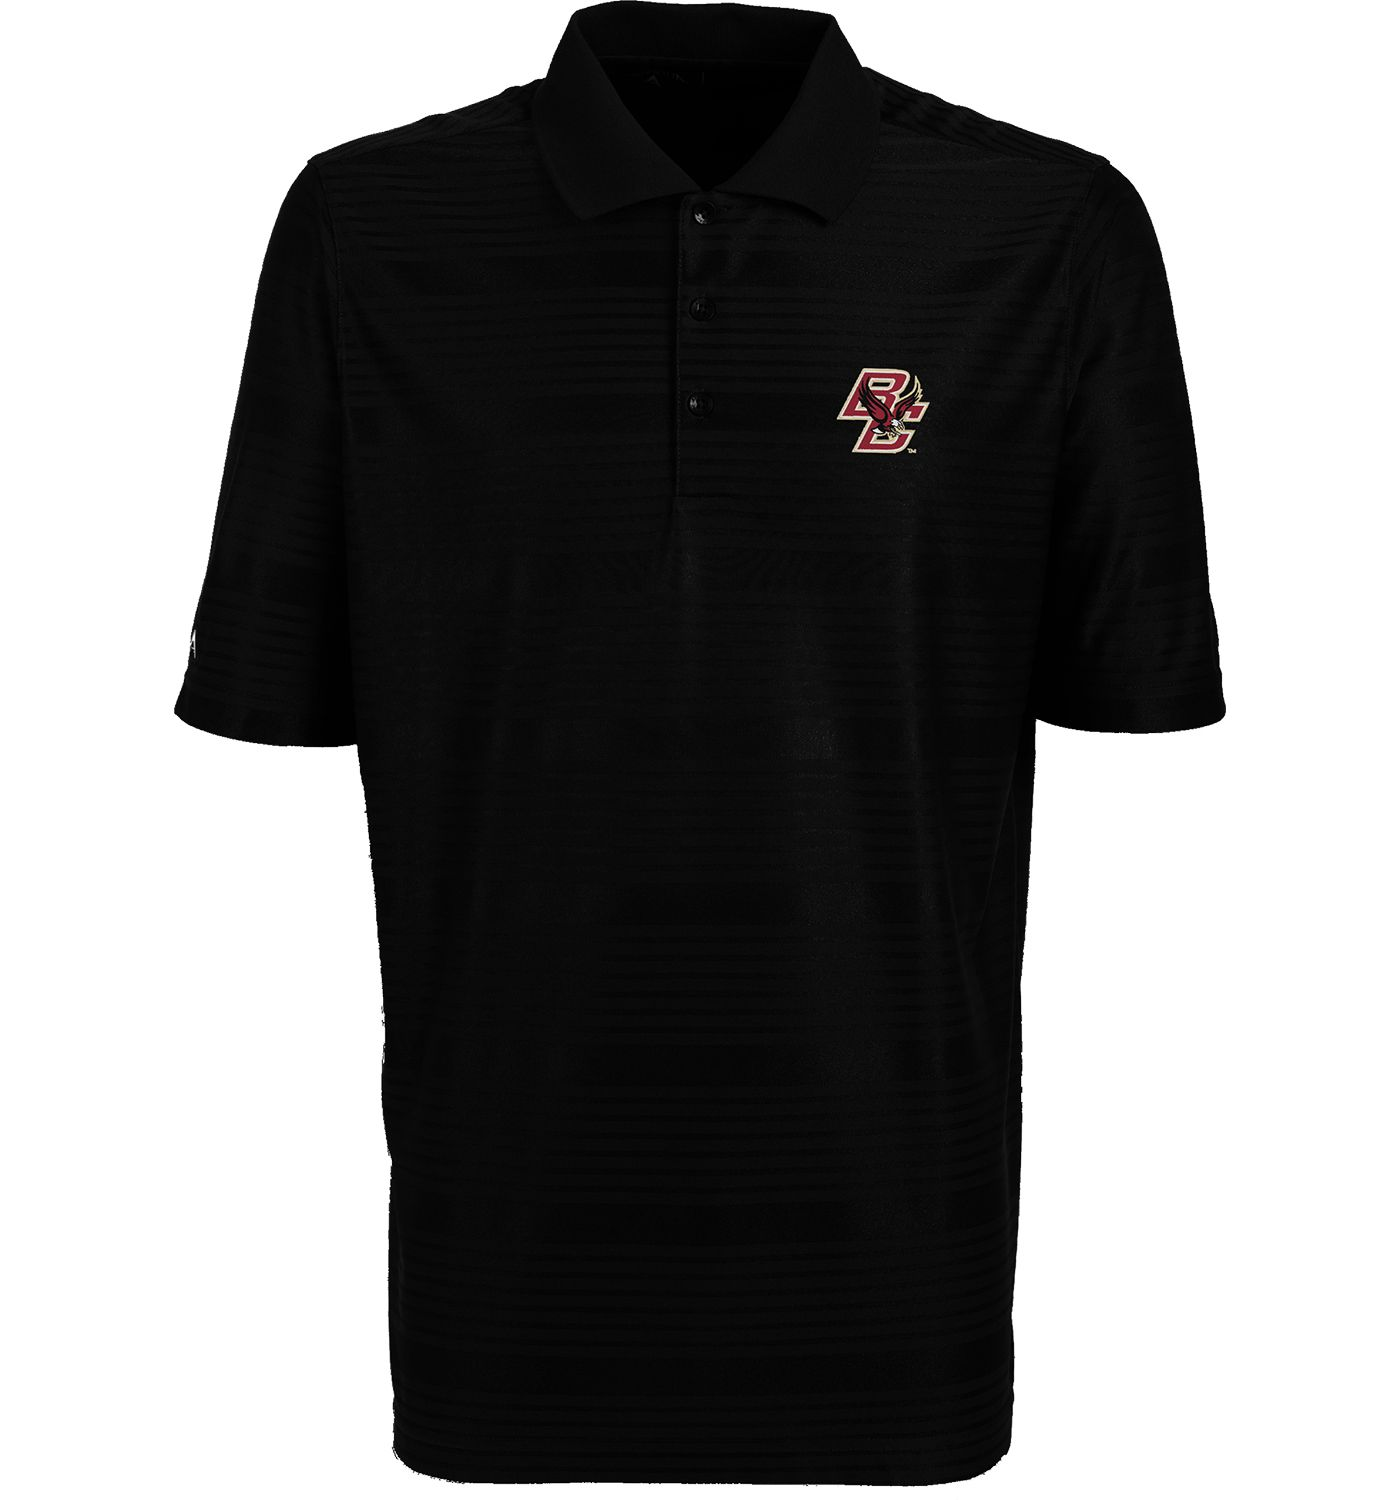 Antigua Men's Boston College Eagles Black Illusion Performance Polo